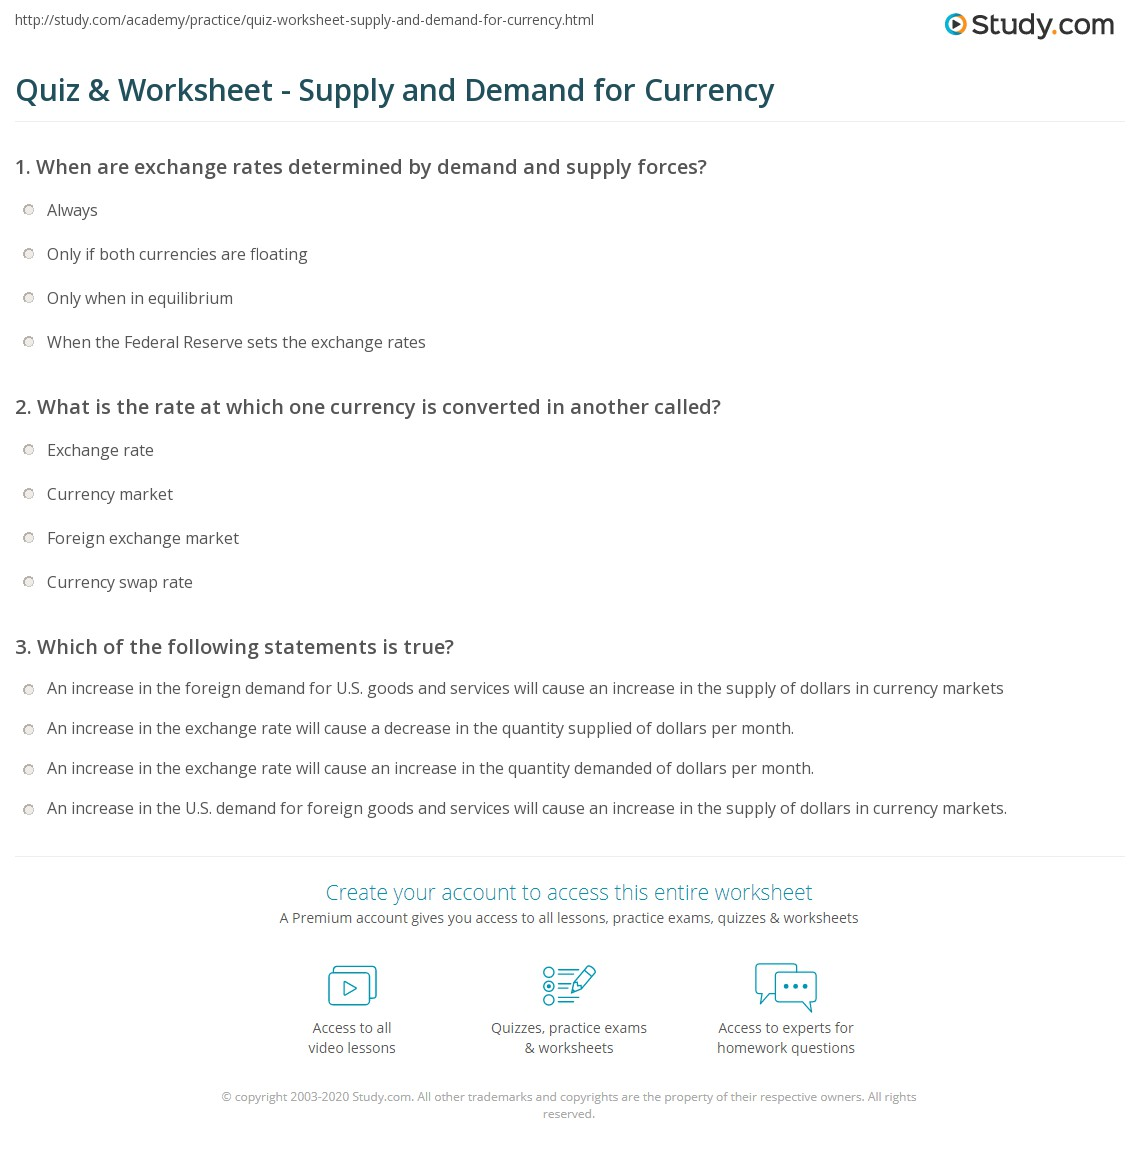 Quiz W Ksheet Supply Nd Dem Nd Currency Study